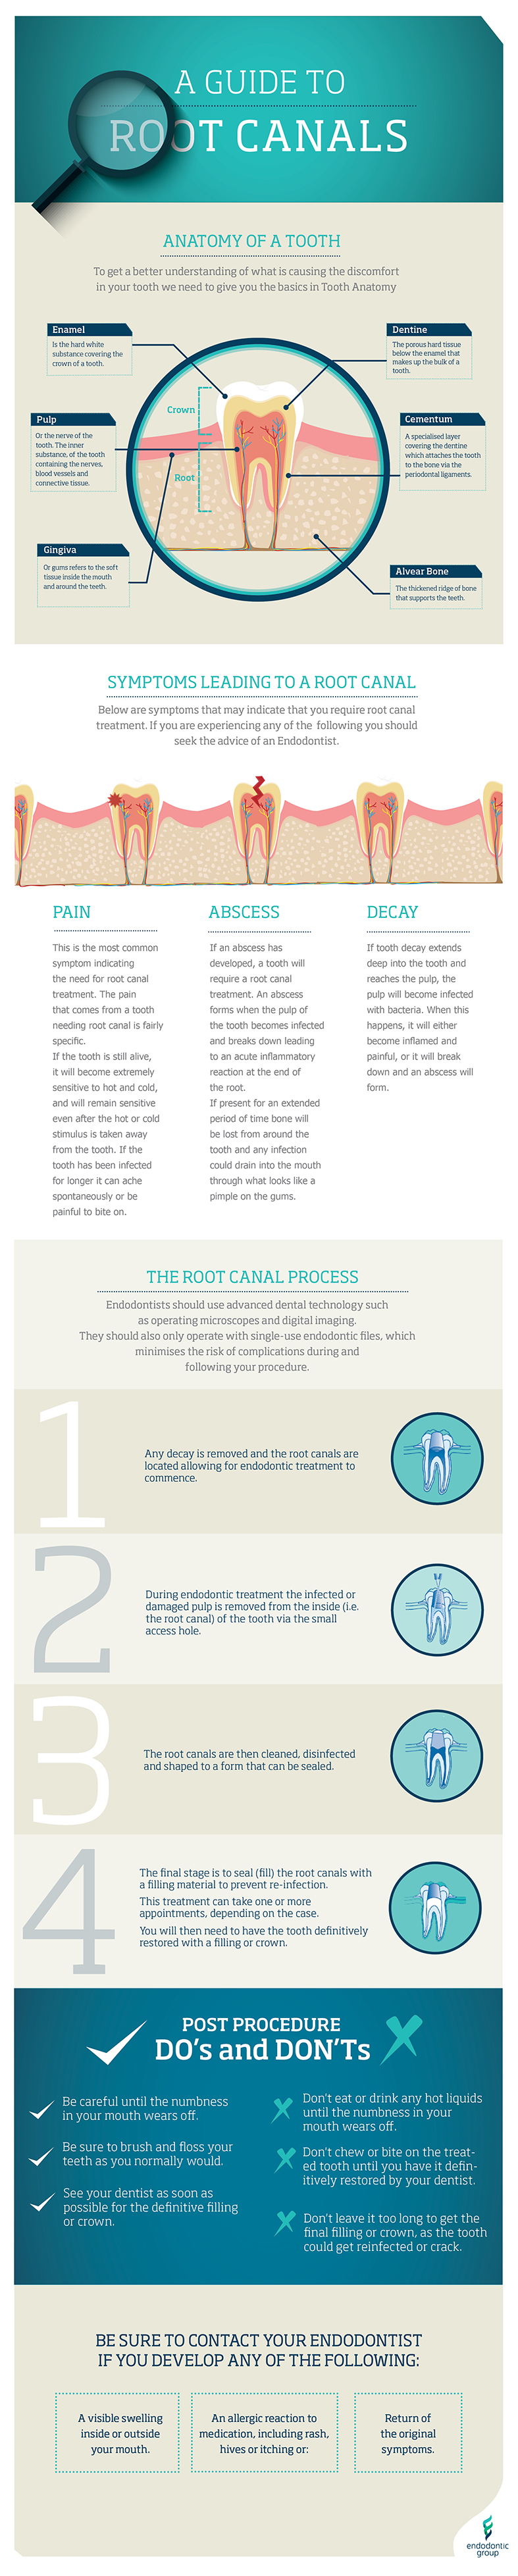 A Guide to Root Canals